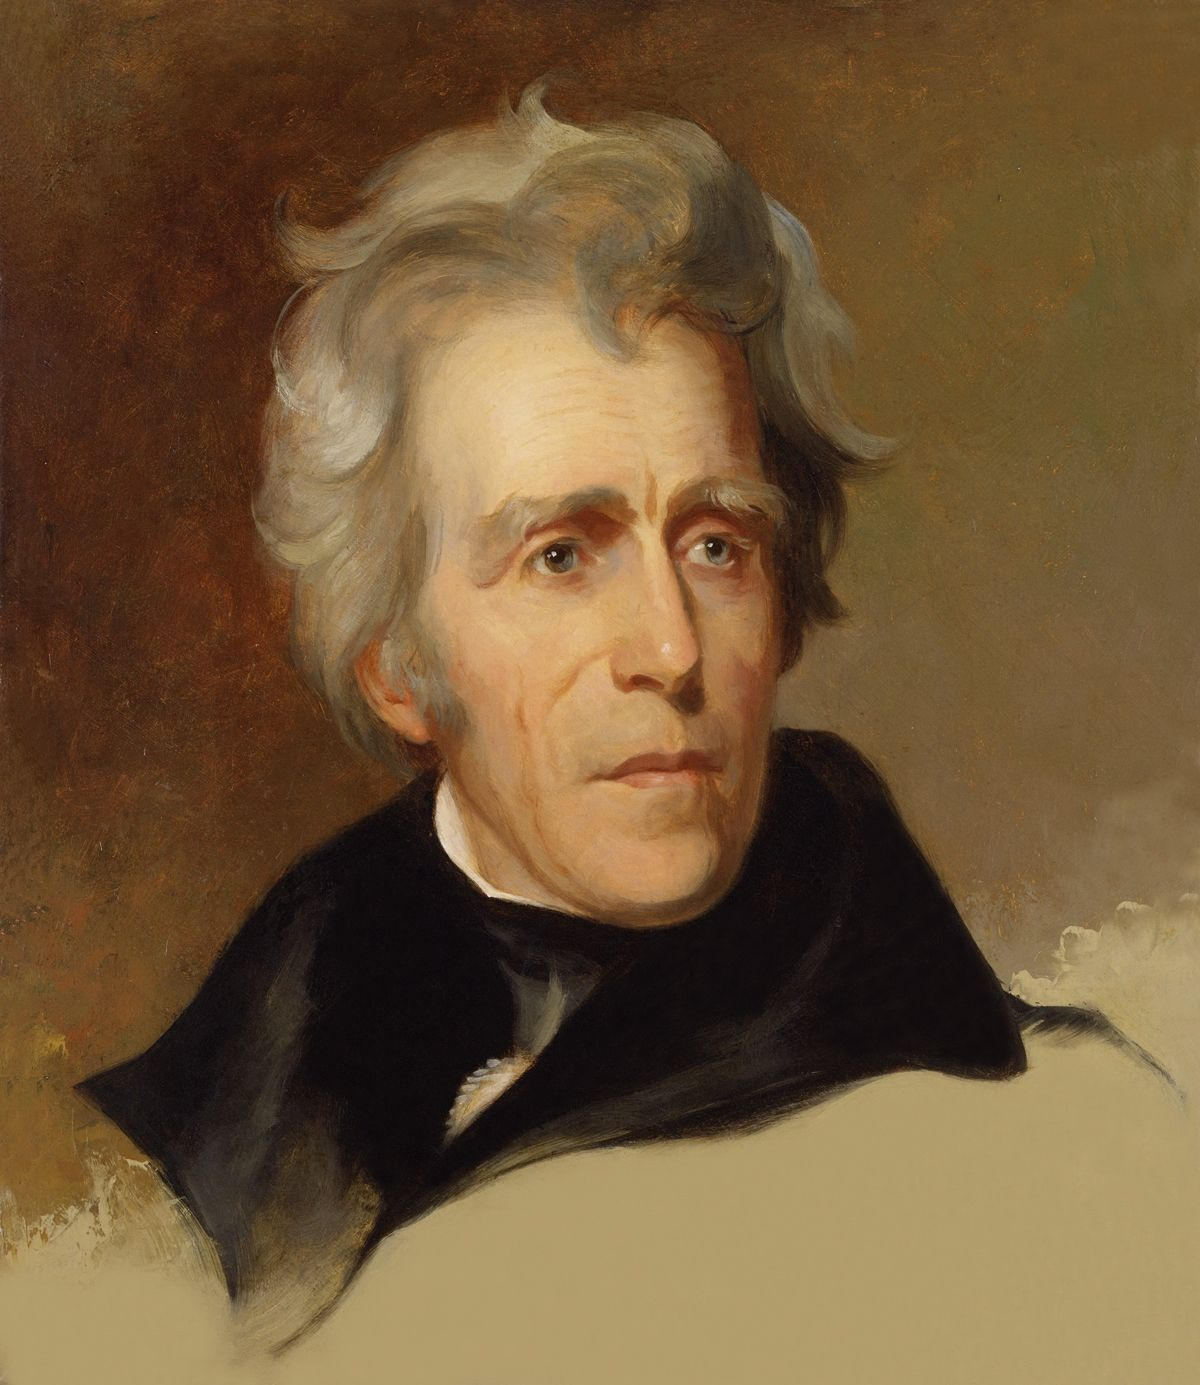 was andrew jackson a good president Andrew jackson was born near the border of north and south carolina on march 15, 1767, to elizabeth jackson three weeks after the death of his father, andrew two years earlier, the jacksons had emigrated from northern ireland with andrew's older brothers, hugh and robert, to the waxhaw settlement.